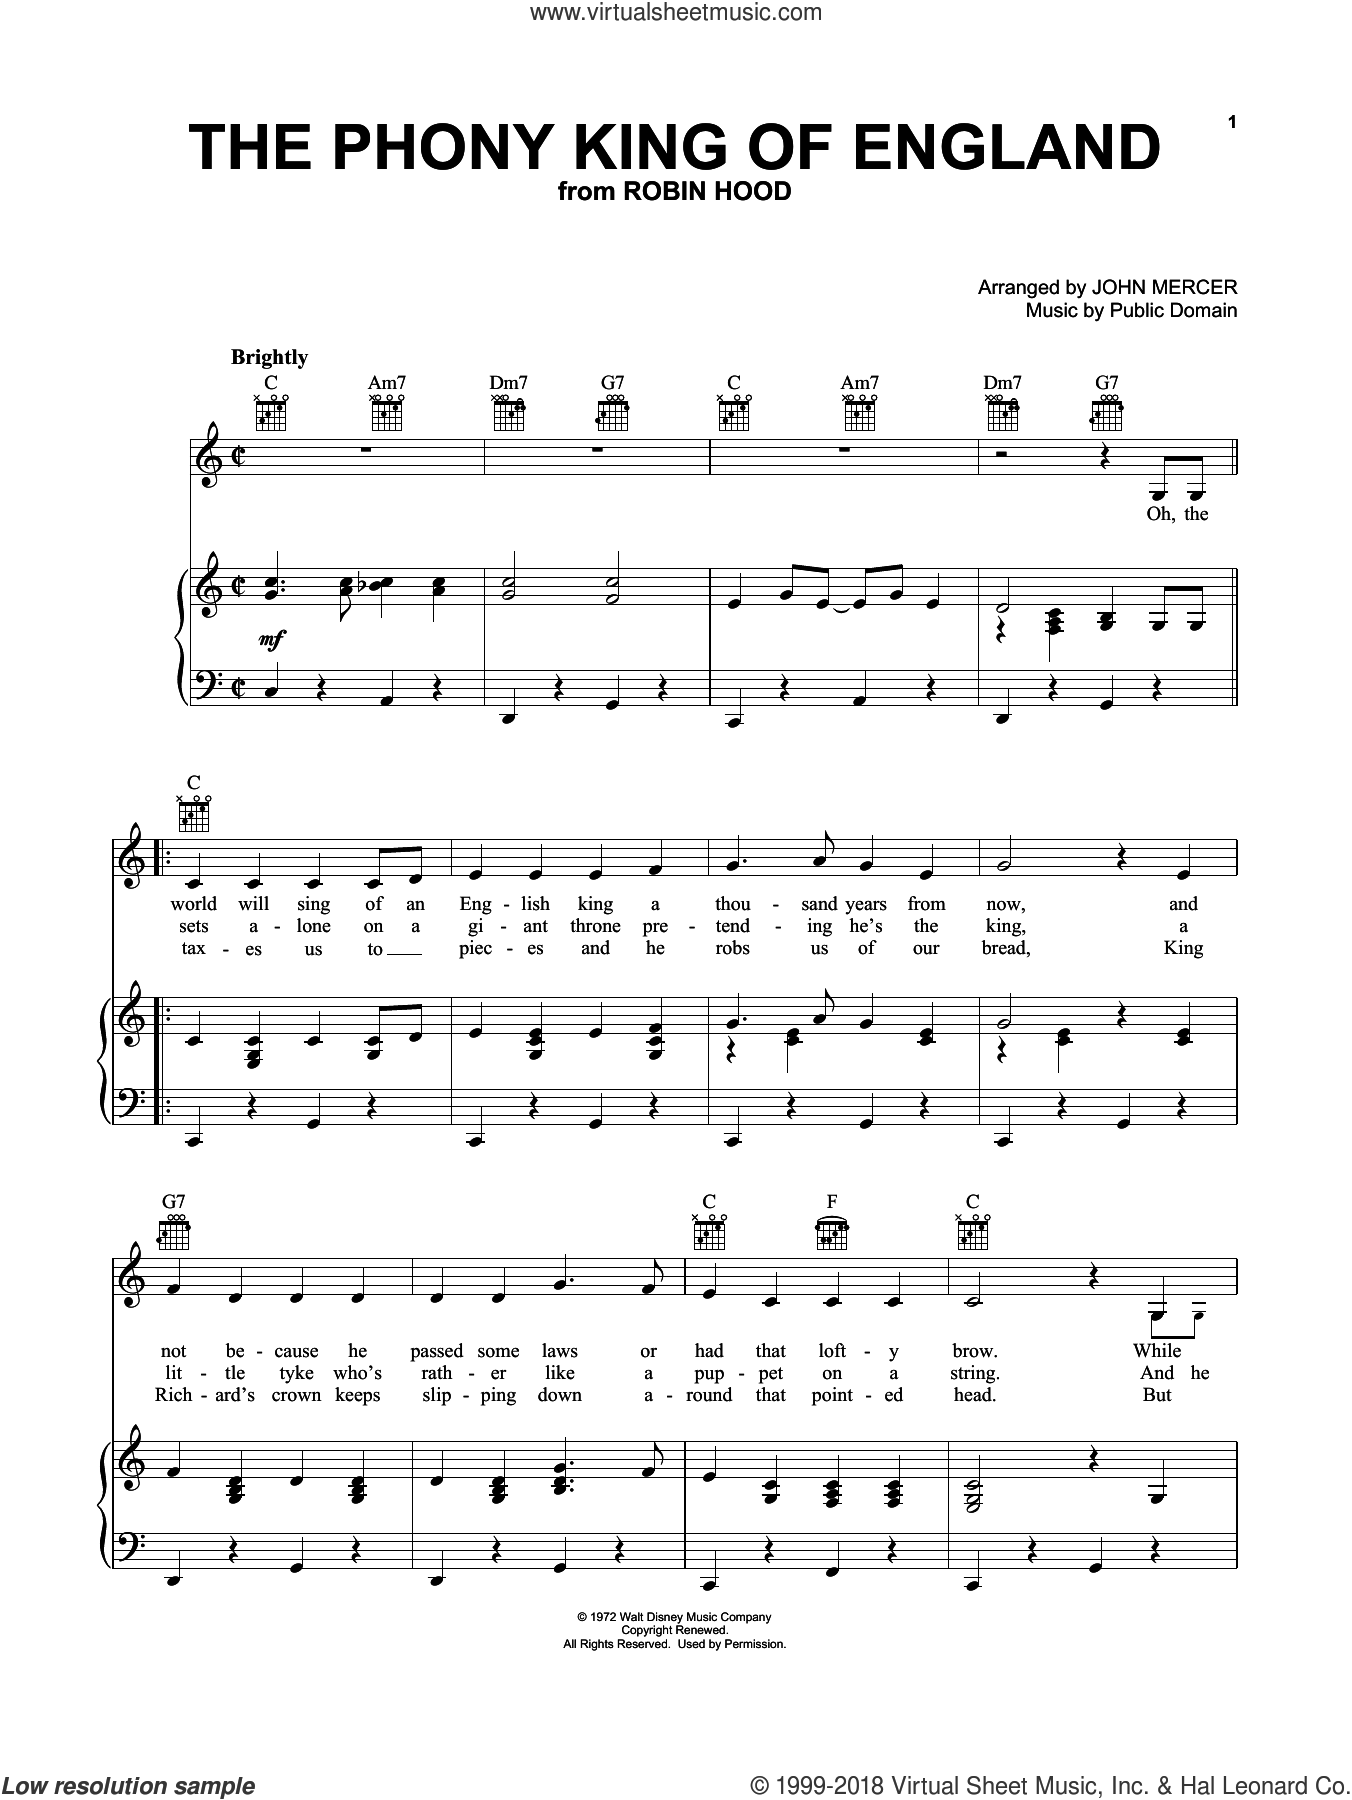 The Phony King Of England sheet music for voice, piano or guitar by John Mercer, John Mercer (arr.) and Public Domain, intermediate skill level